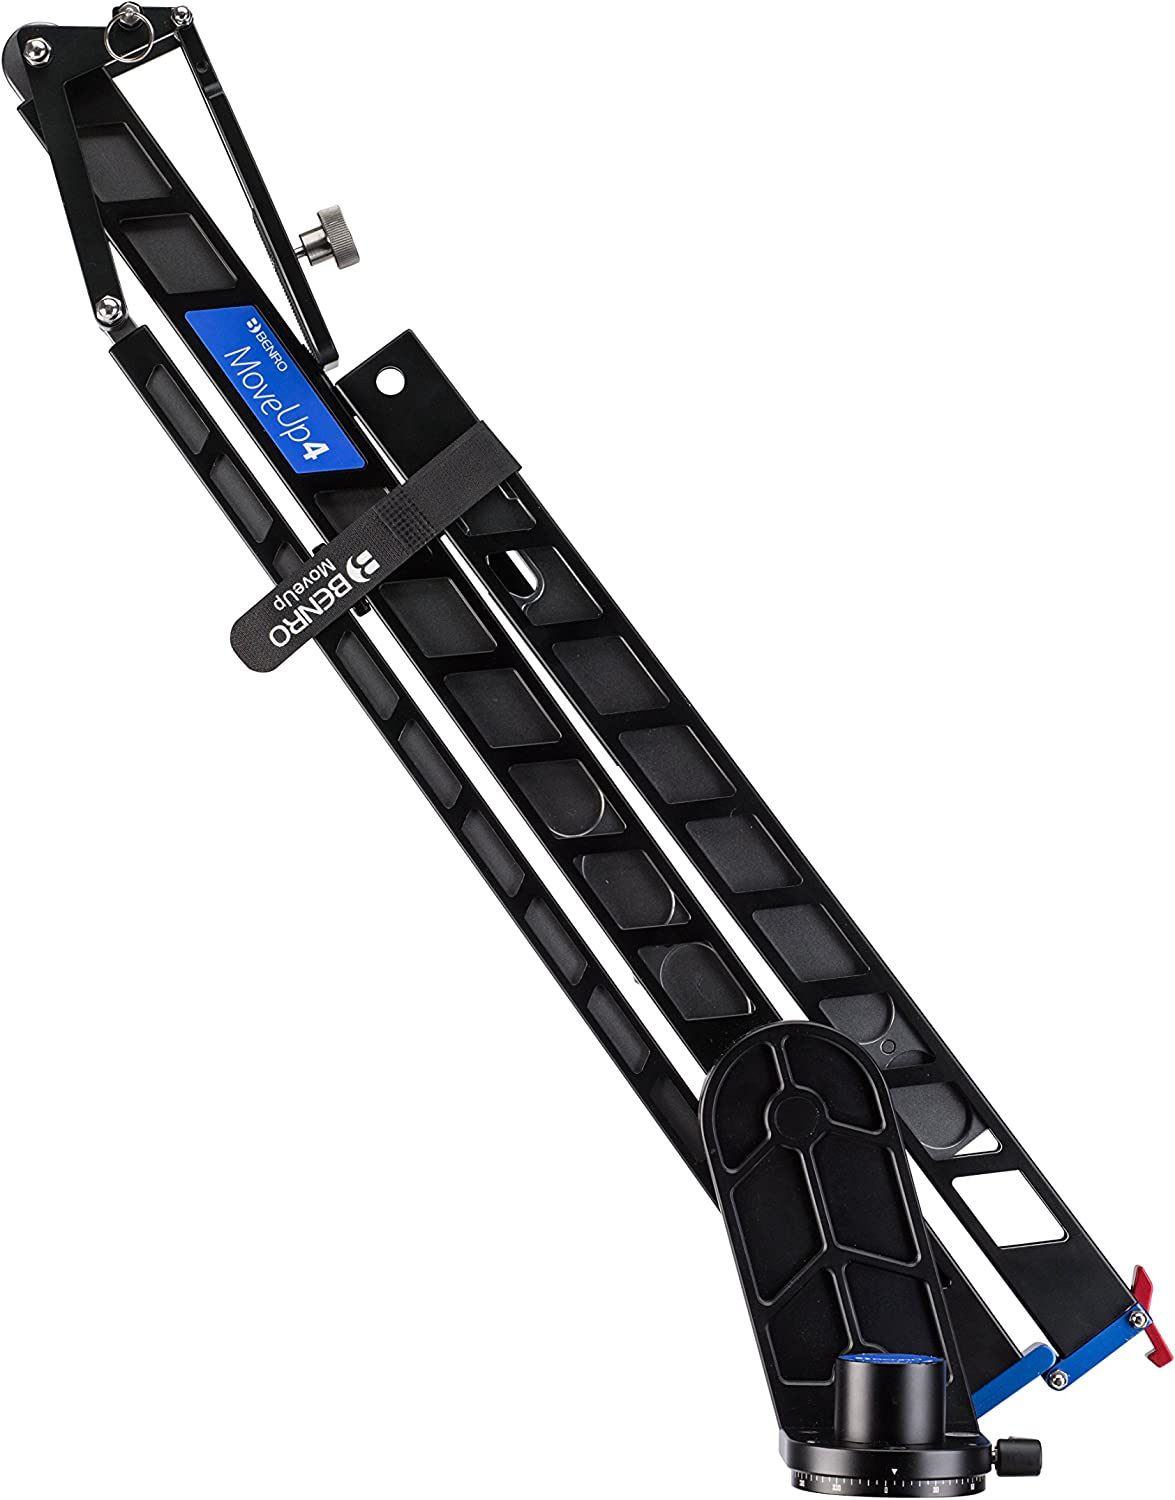 Benro MoveUp4 Travel Jib A04J18